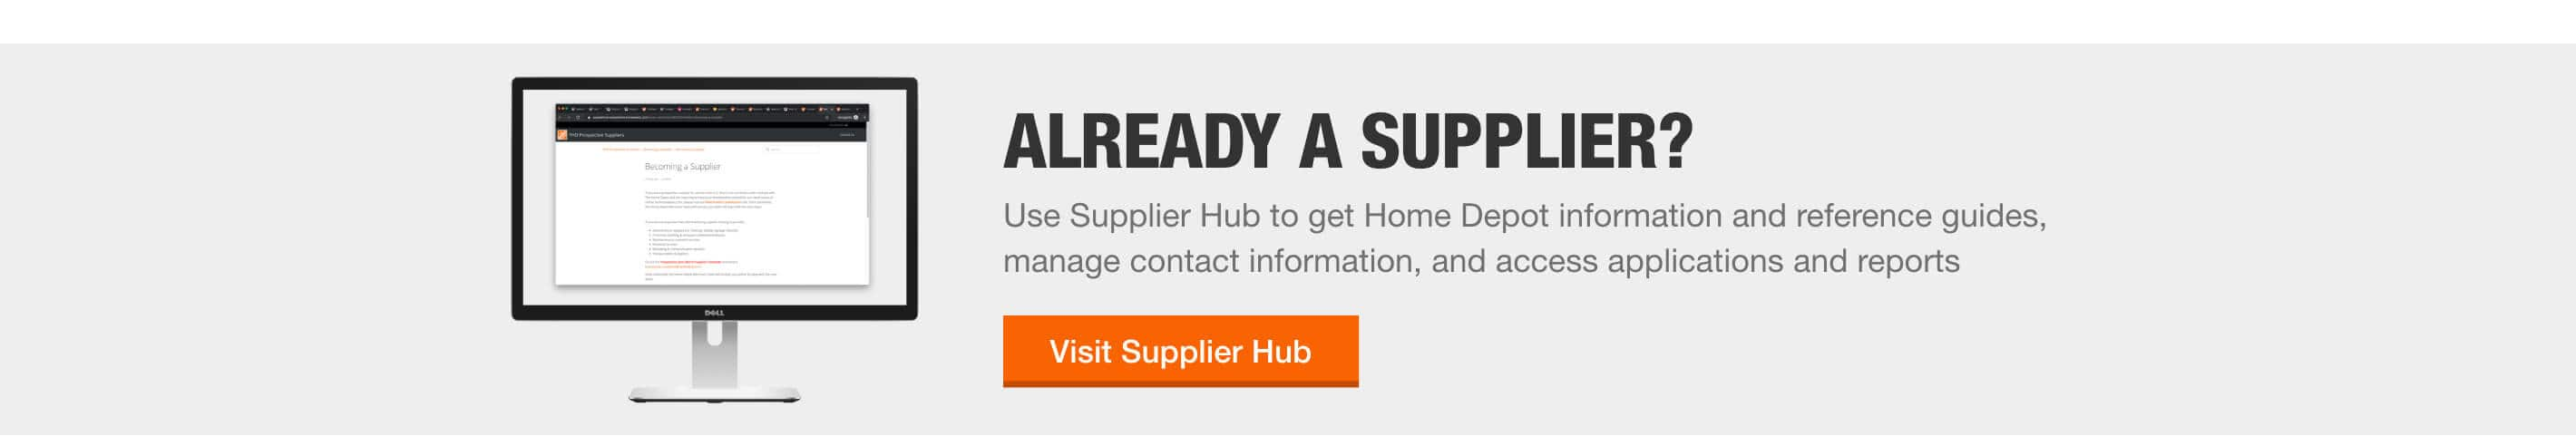 ALREADY A SUPPLIER? - Supplier Hub is your place to access important Home Depot information and reference guides, manage contact information, and access applications and reports. > Visit Supplier Hub